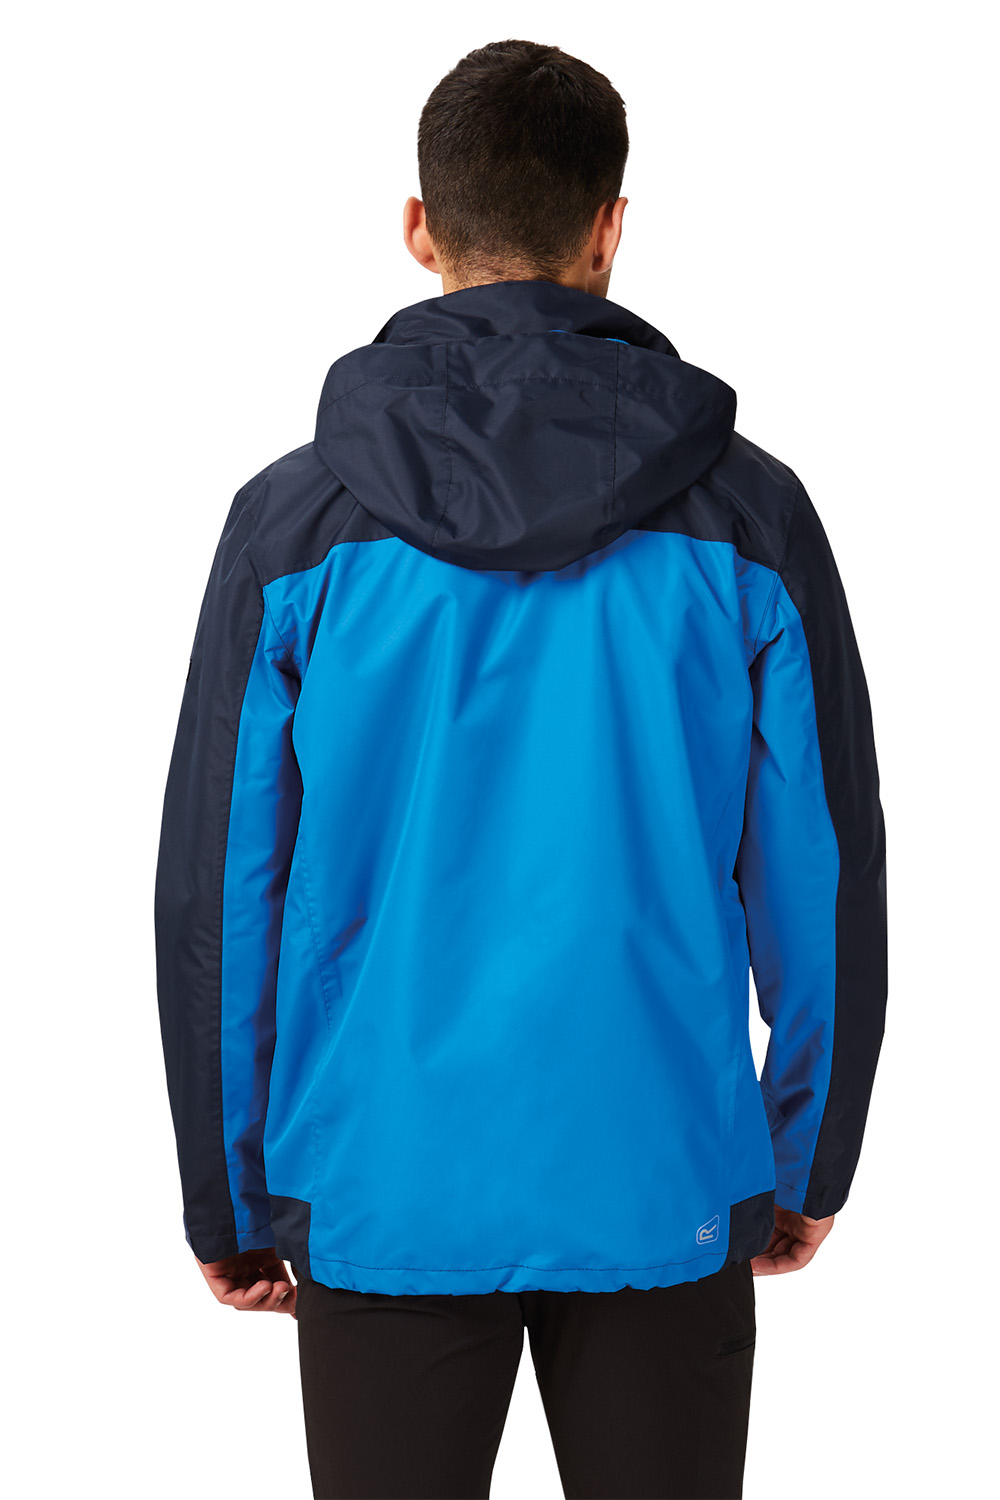 Regatta-Mens-Calderdale-II-Jacket-Waterproof-Breathable-Isotex-5000-Hooded-Coat thumbnail 9